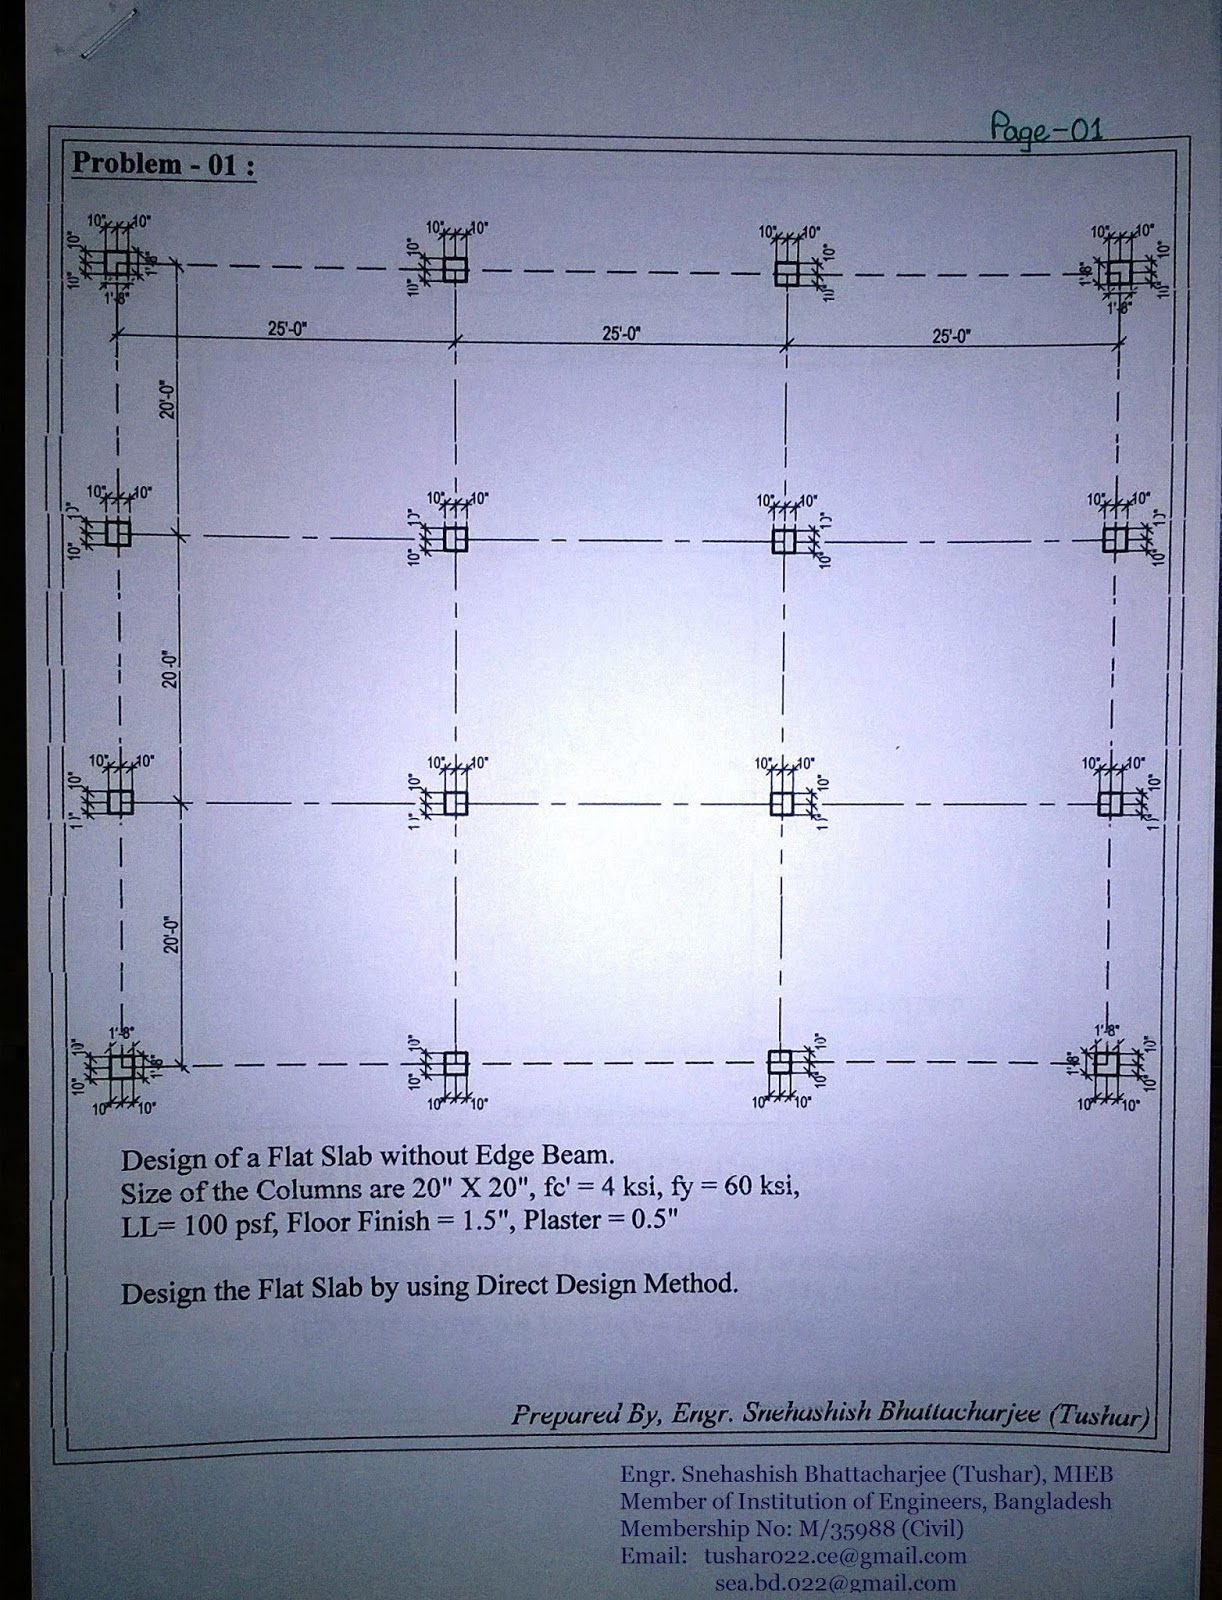 SEA Soft and Design Consultants: Design of Flat Slab - (Example-01)